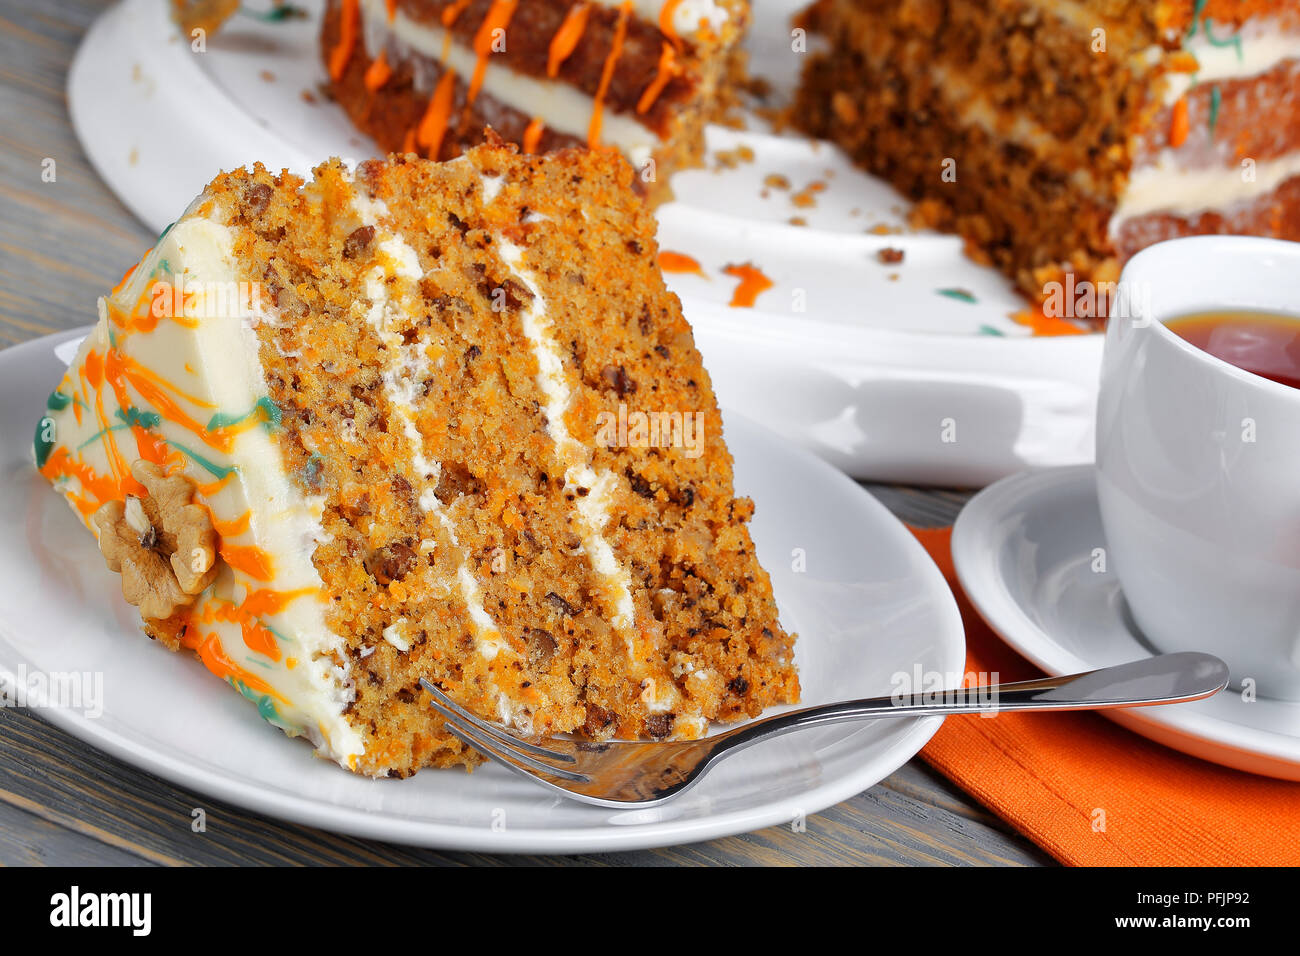 piece of classic carrot cake with cream cheese frosting decorated with walnuts and drizzled with colorful ganache with cup of tea on wooden table, vie - Stock Image